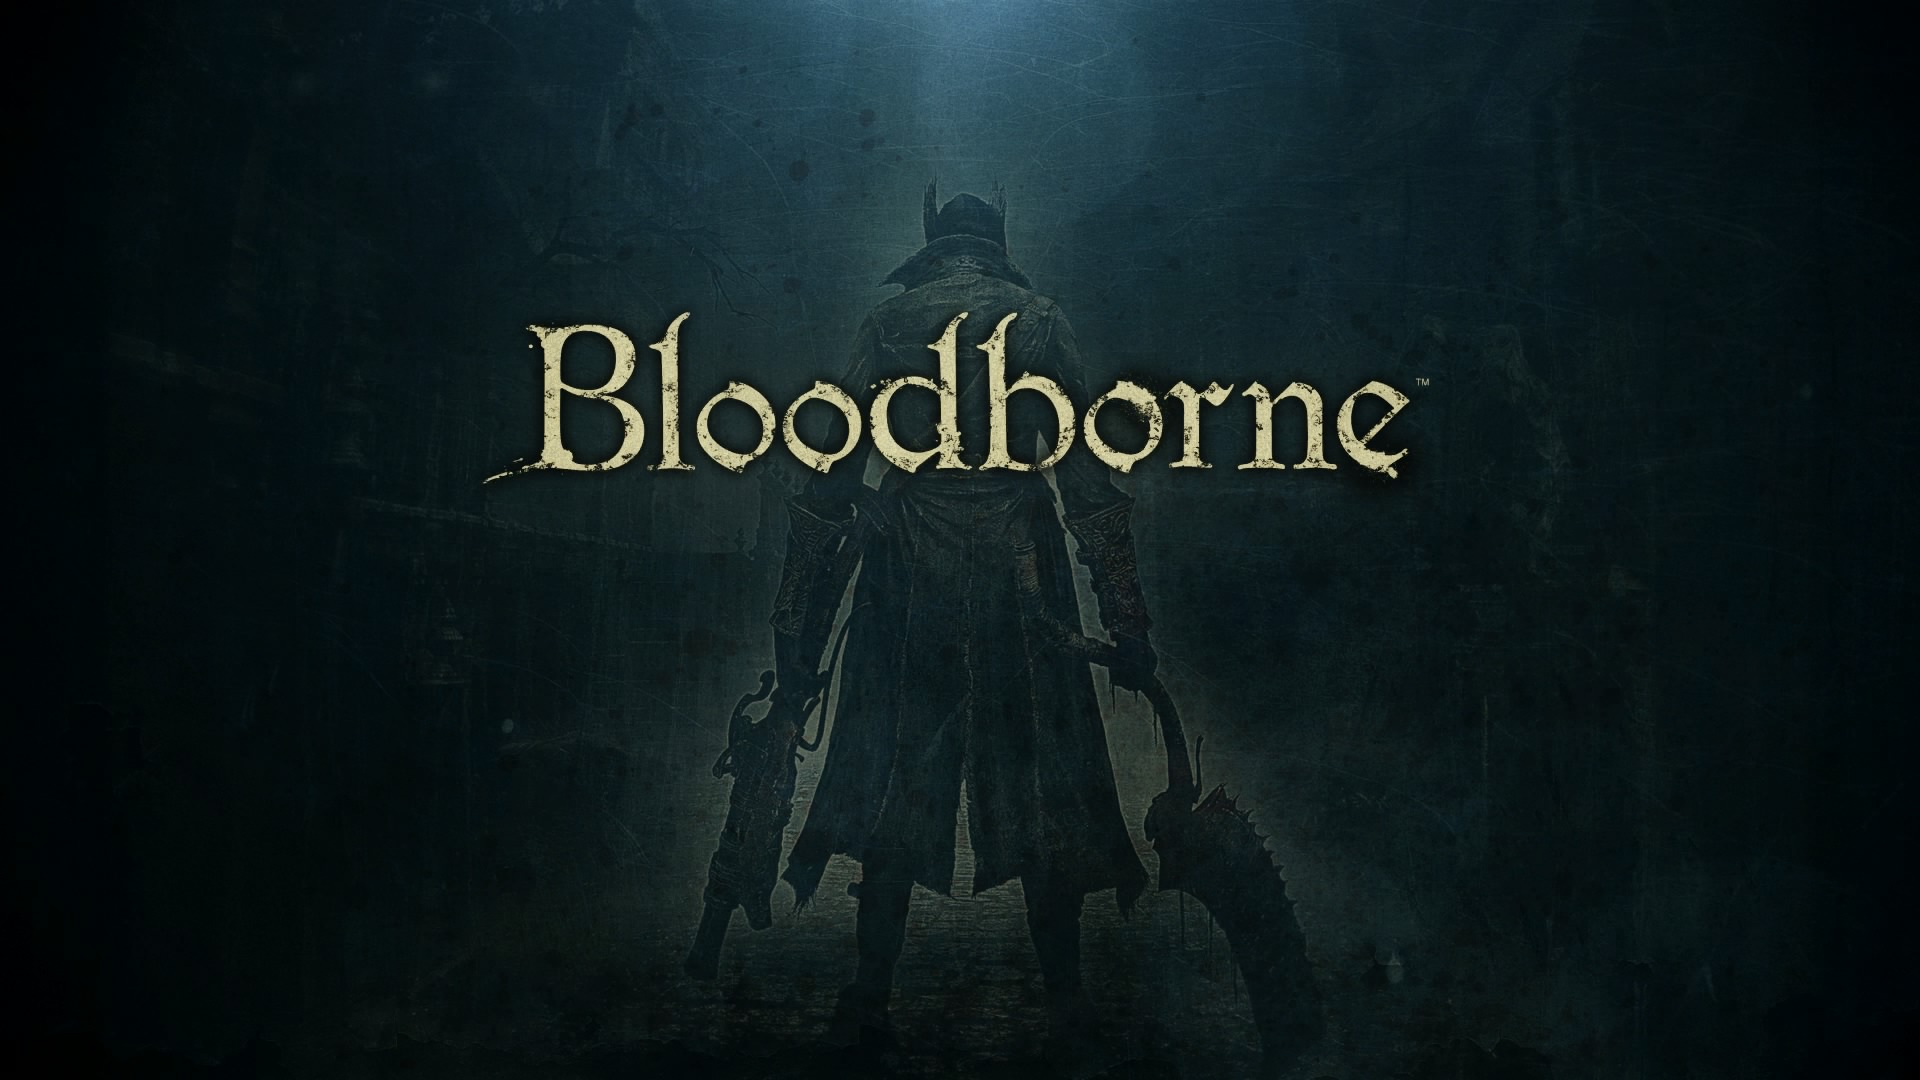 Hd Game Wallpapers For Iphone 6 Bloodborne Computer Wallpapers Desktop Backgrounds